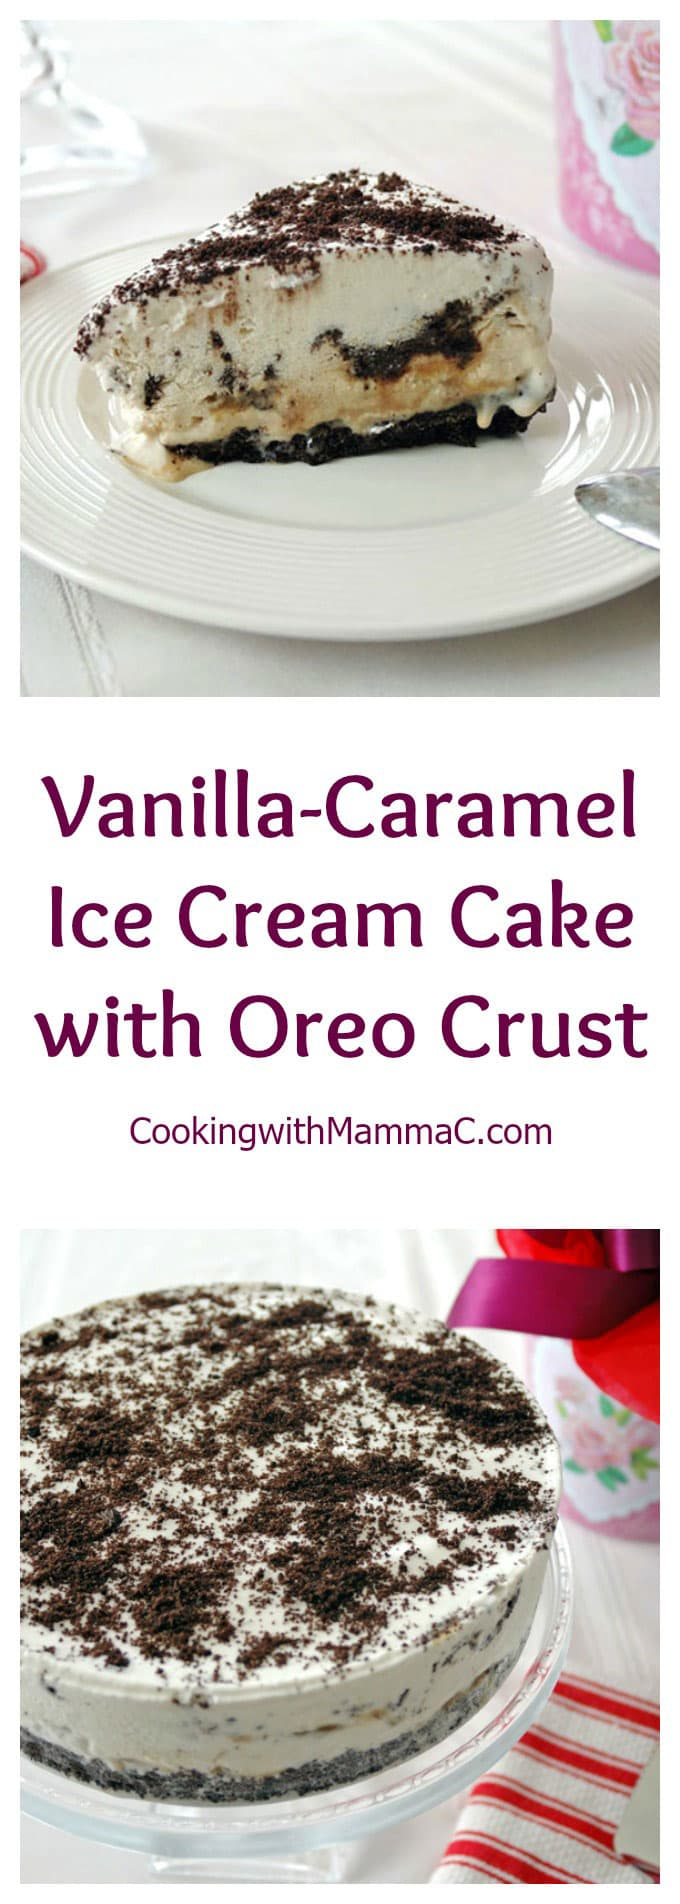 Vanilla-Caramel Ice Cream Cake with Oreo Crust - A family favorite with homemade caramel sauce & whipped cream!